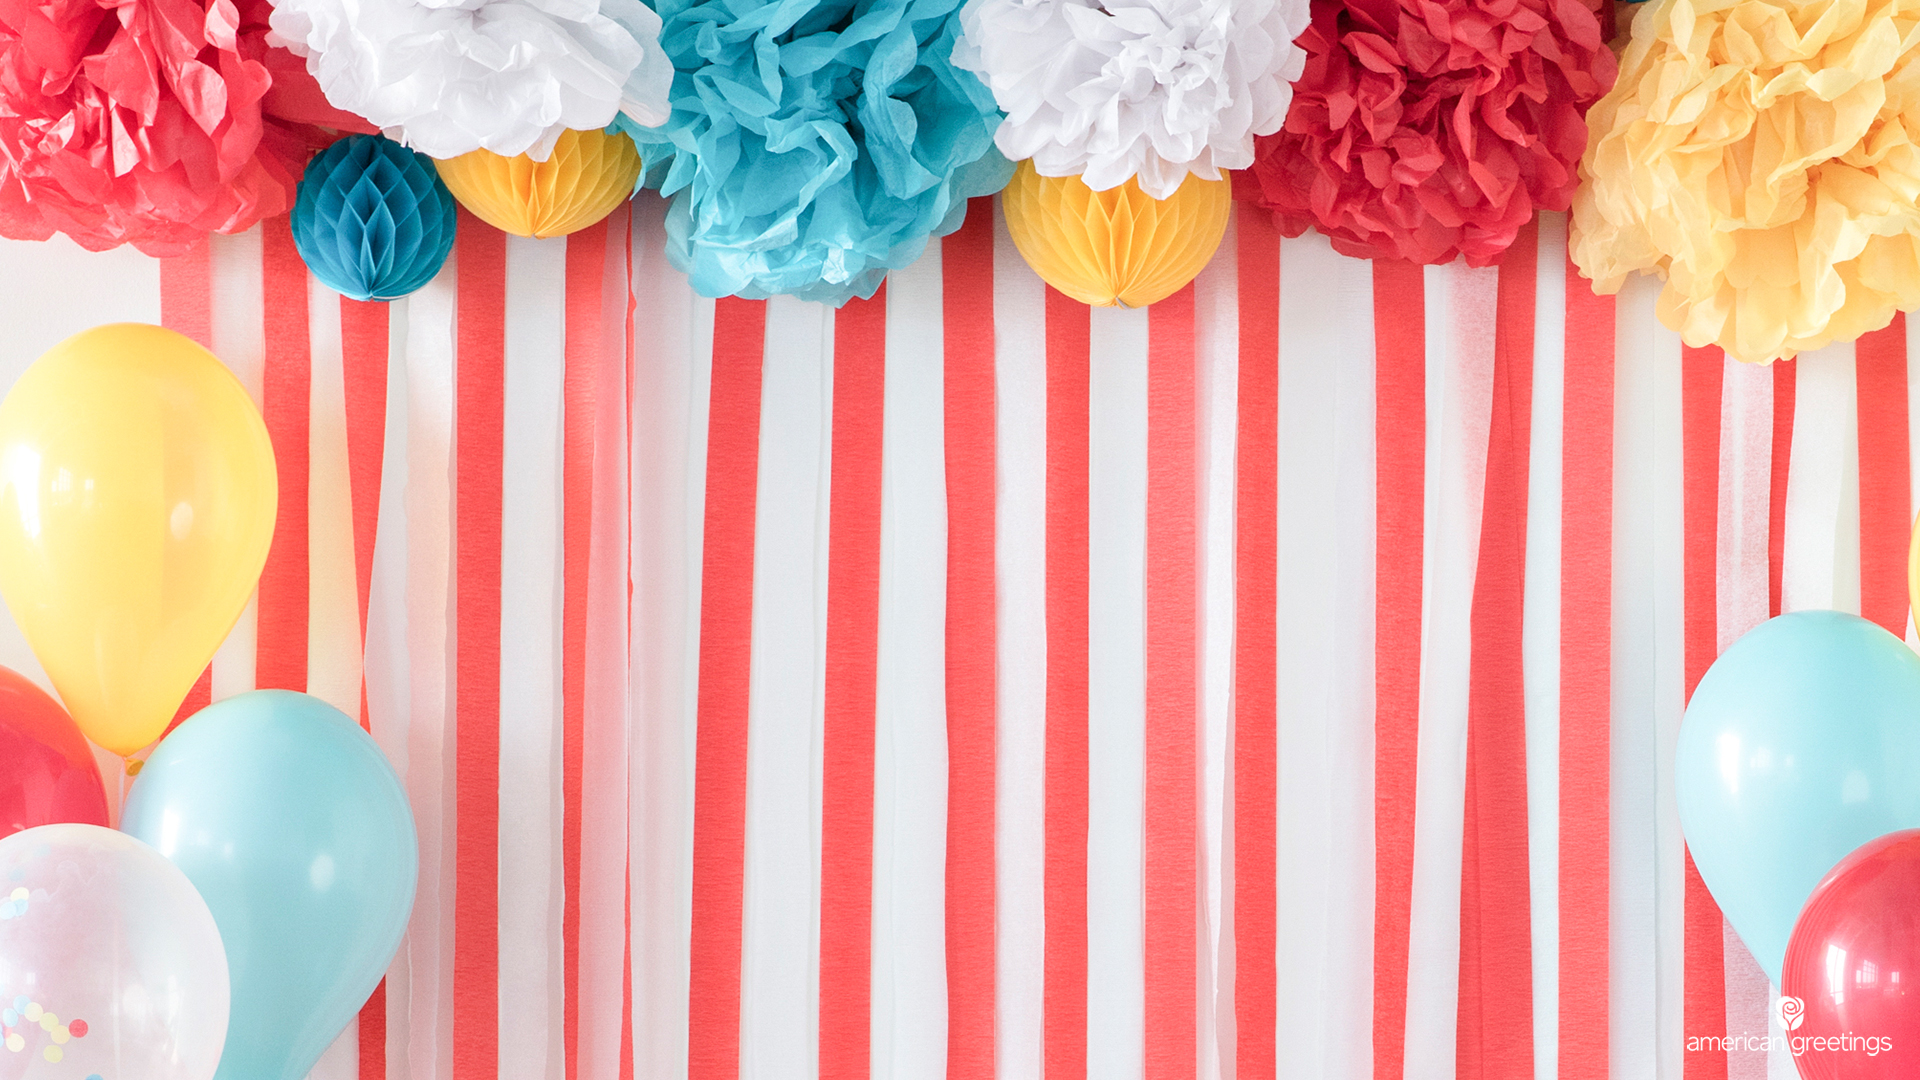 Free Virtual Backgrounds For Zoom   American Greetings